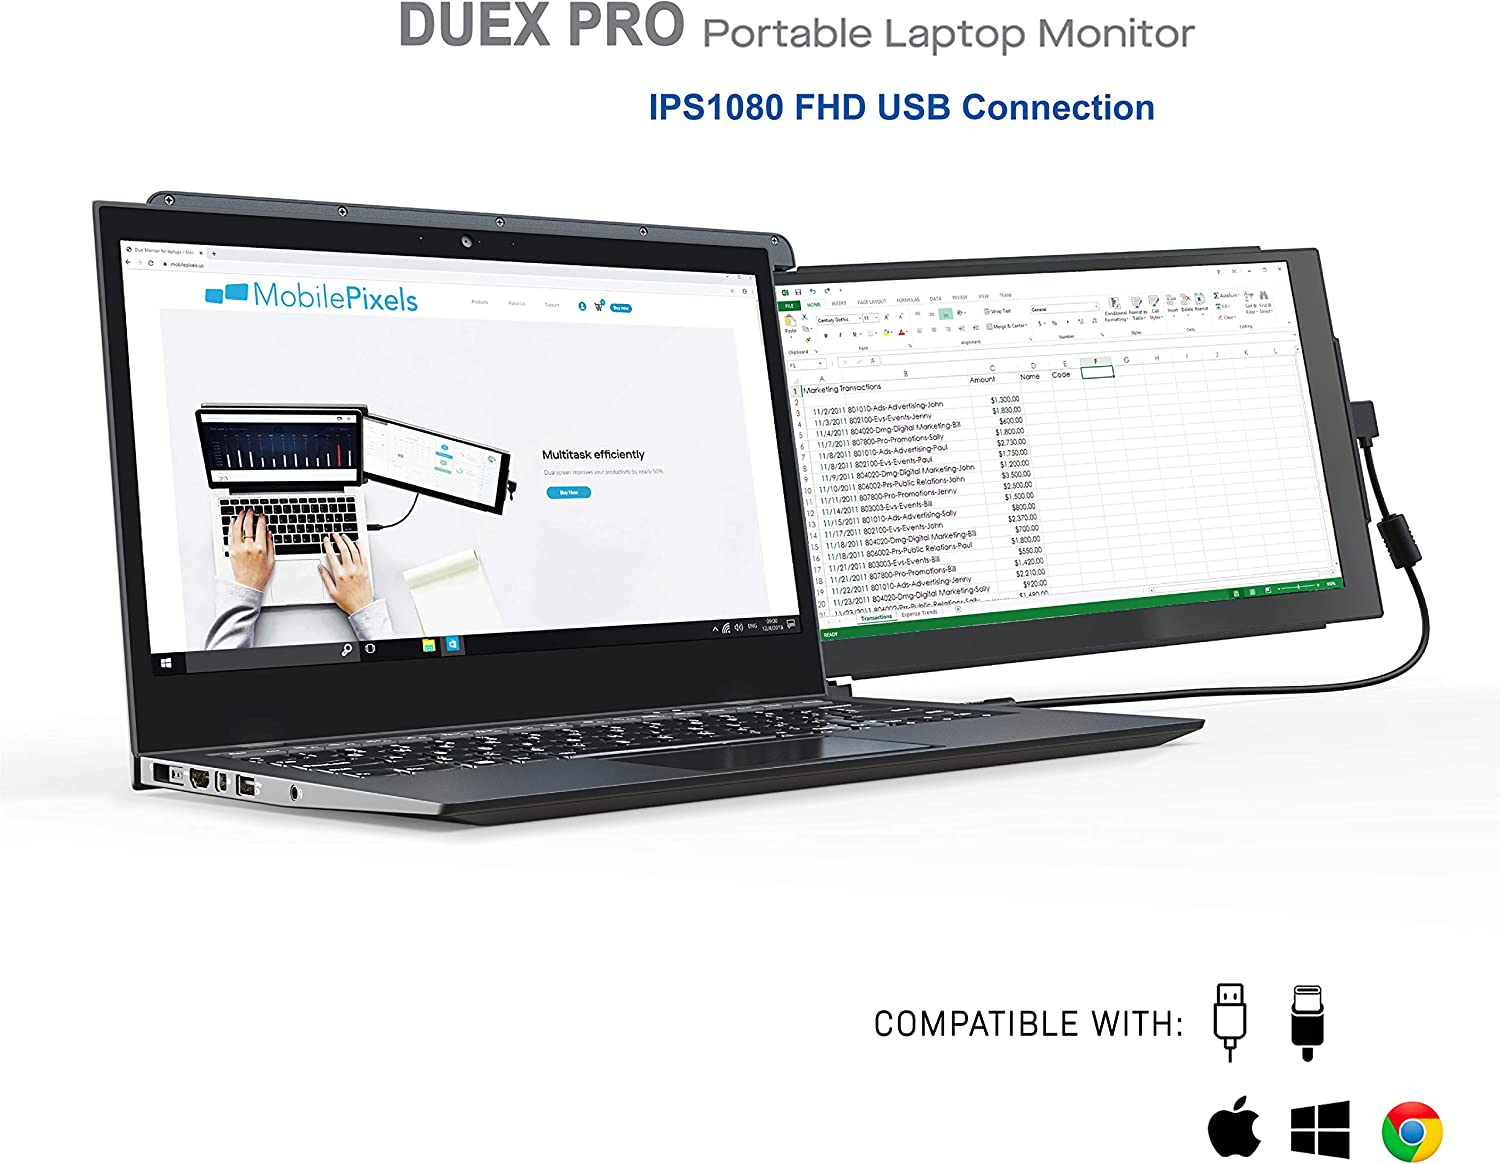 Increible Doble Monitor para su Laptop 12.5p Full HD USB-C